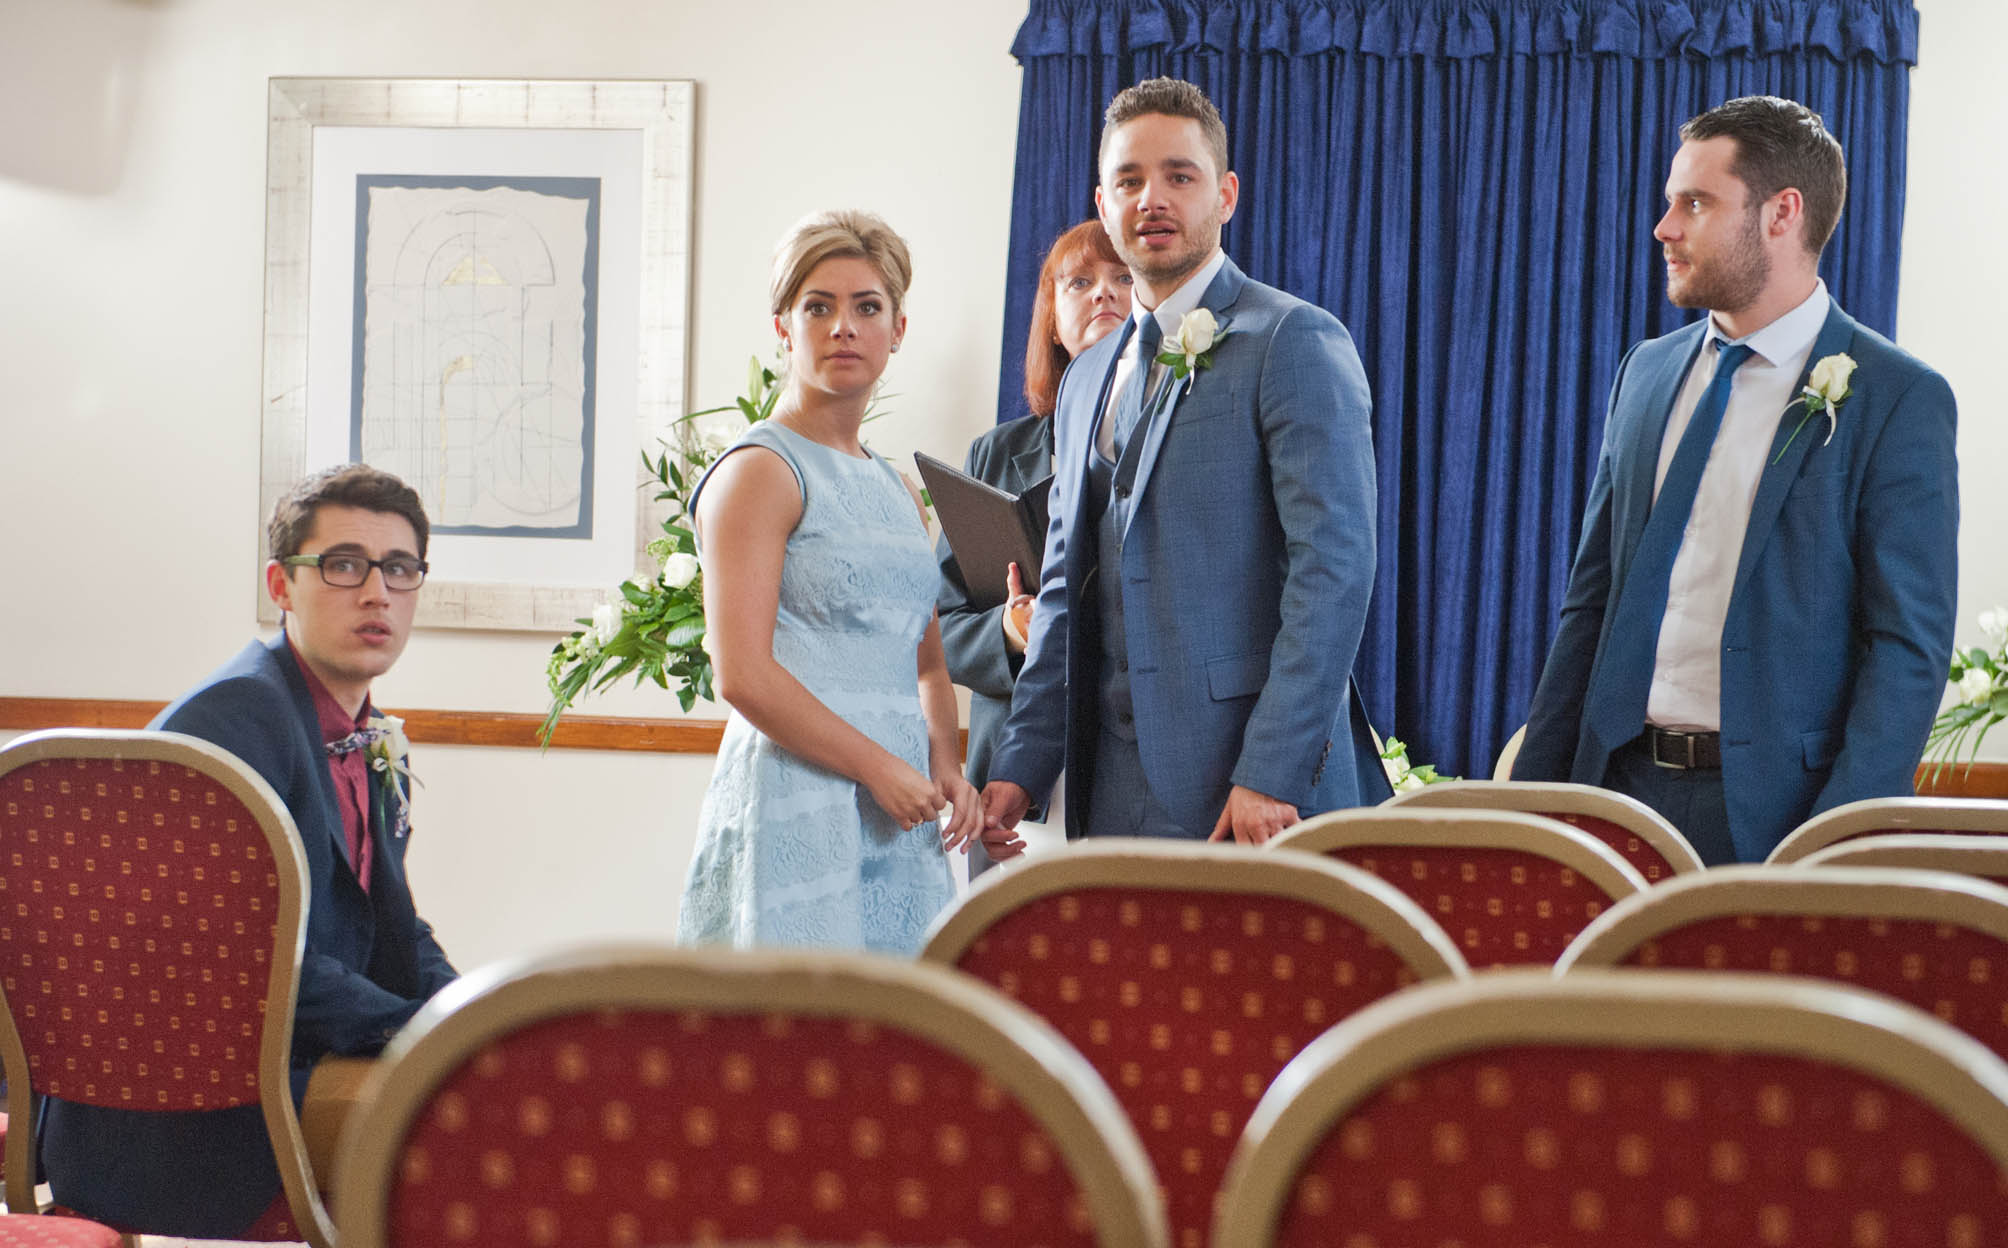 FROM ITV STRICT EMBARGO -TV Listings Magazines & websites Tuesday 16 June 2015, Newspapers Saturday 20 June 2015  Emmerdale - Ep 7217 Thursday 25 June 2015 - 1st Ep As Victoria Sugden [ISOBEL HODGINS] and Adam Barton [ADAM THOMAS] get ready for their wedding, both try hard not to think about the impending court case.  At the registry office, Aaron Livesy [DANNY MILLER] arrives and encourages a worried Adam not to worry and to just focus on himself and Victoria. Victoria arrives at her wedding accompanied by Finn Barton [JOE GILL]. It's all smiles for the intimate wedding party and the service begins. But the besotted pair and their two guests are soon distracted by a noise outside. Will an uninvited arrival halt proceedings?    Picture contact: david.crook@itv.com on 0161 952 6214 Photographer - Amy Brammall This photograph is (C) ITV Plc and can only be reproduced for editorial purposes directly in connection with the programme or event mentioned above, or ITV plc. Once made available by ITV plc Picture Desk, this photograph can be reproduced once only up until the transmission [TX] date and no reproduction fee will be charged. Any subsequent usage may incur a fee. This photograph must not be manipulated [excluding basic cropping] in a manner which alters the visual appearance of the person photographed deemed detrimental or inappropriate by ITV plc Picture Desk. This photograph must not be syndicated to any other company, publication or website, or permanently archived, without the express written permission of ITV Plc Picture Desk. Full Terms and conditions are available on the website www.itvpictures.com